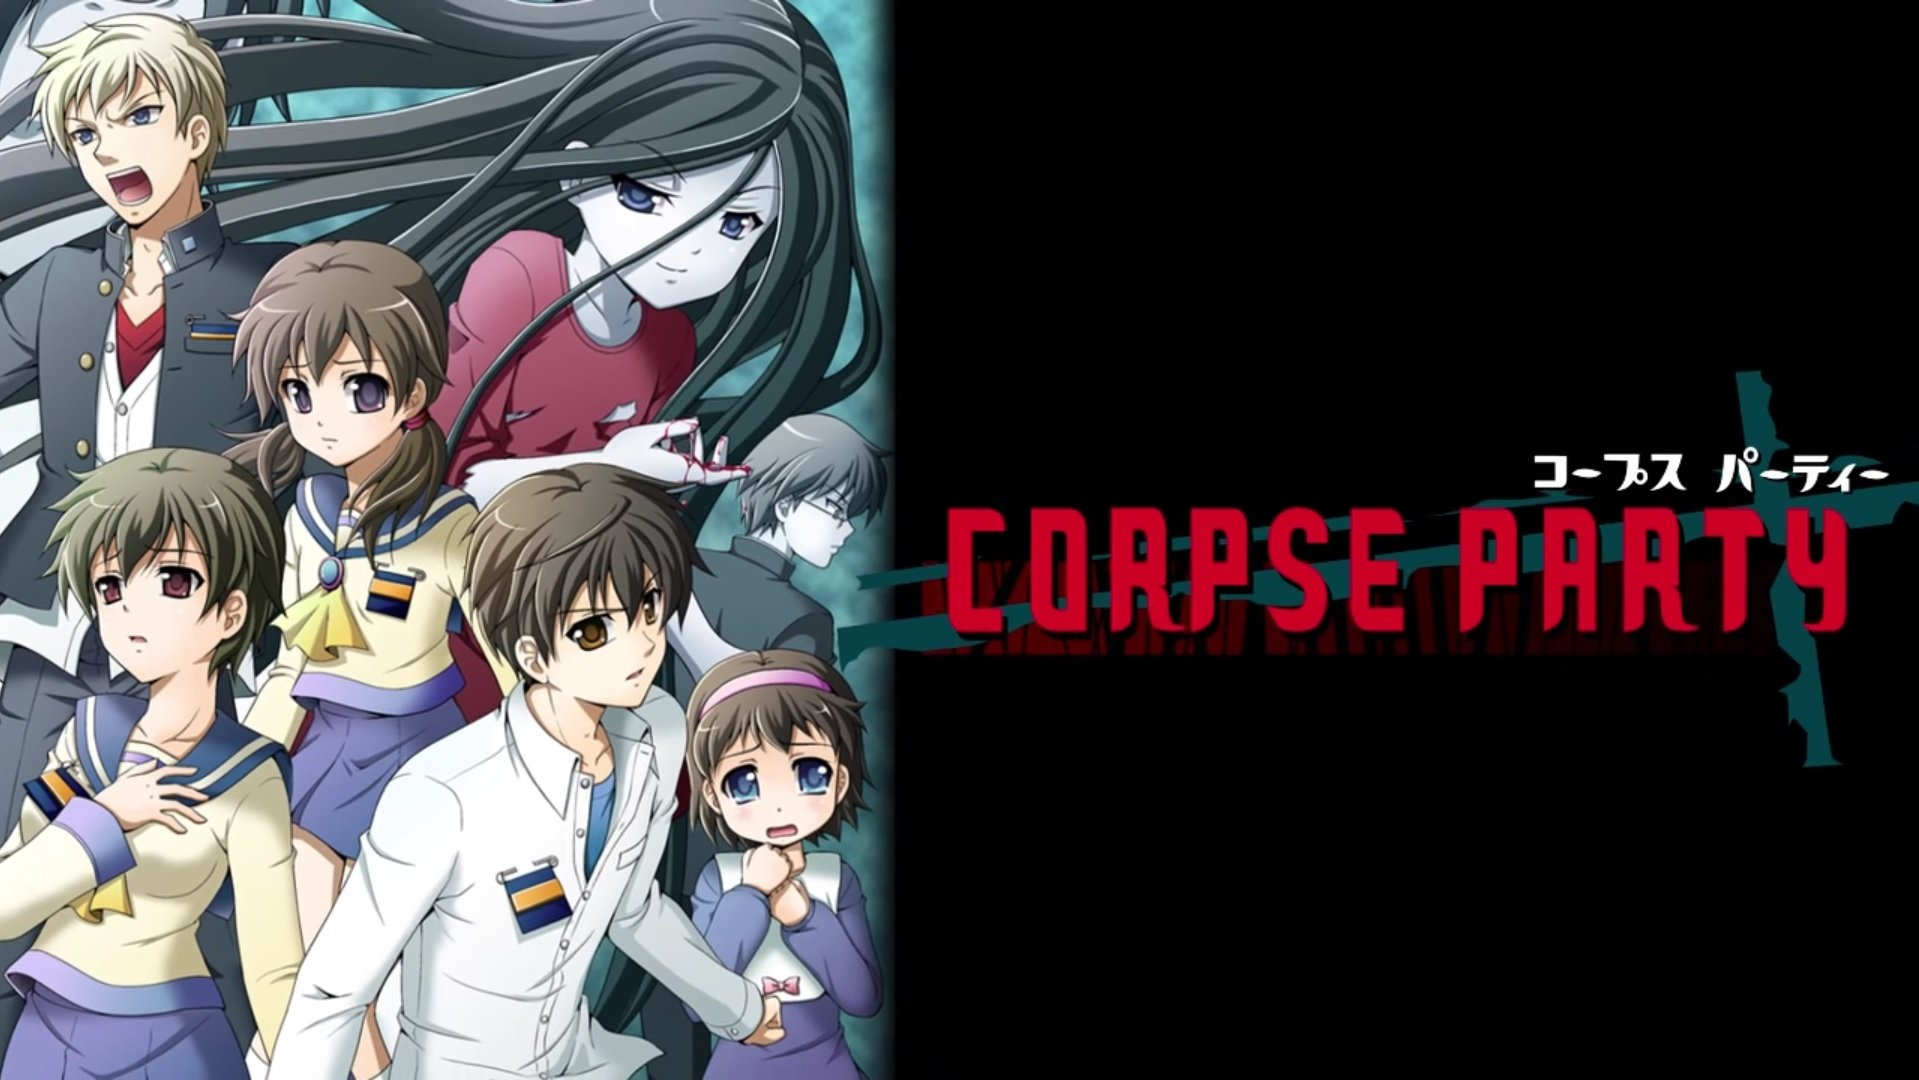 Girl Wallpaper 400x400 Corpse Party Wallpaper And Background Image 1919x1080